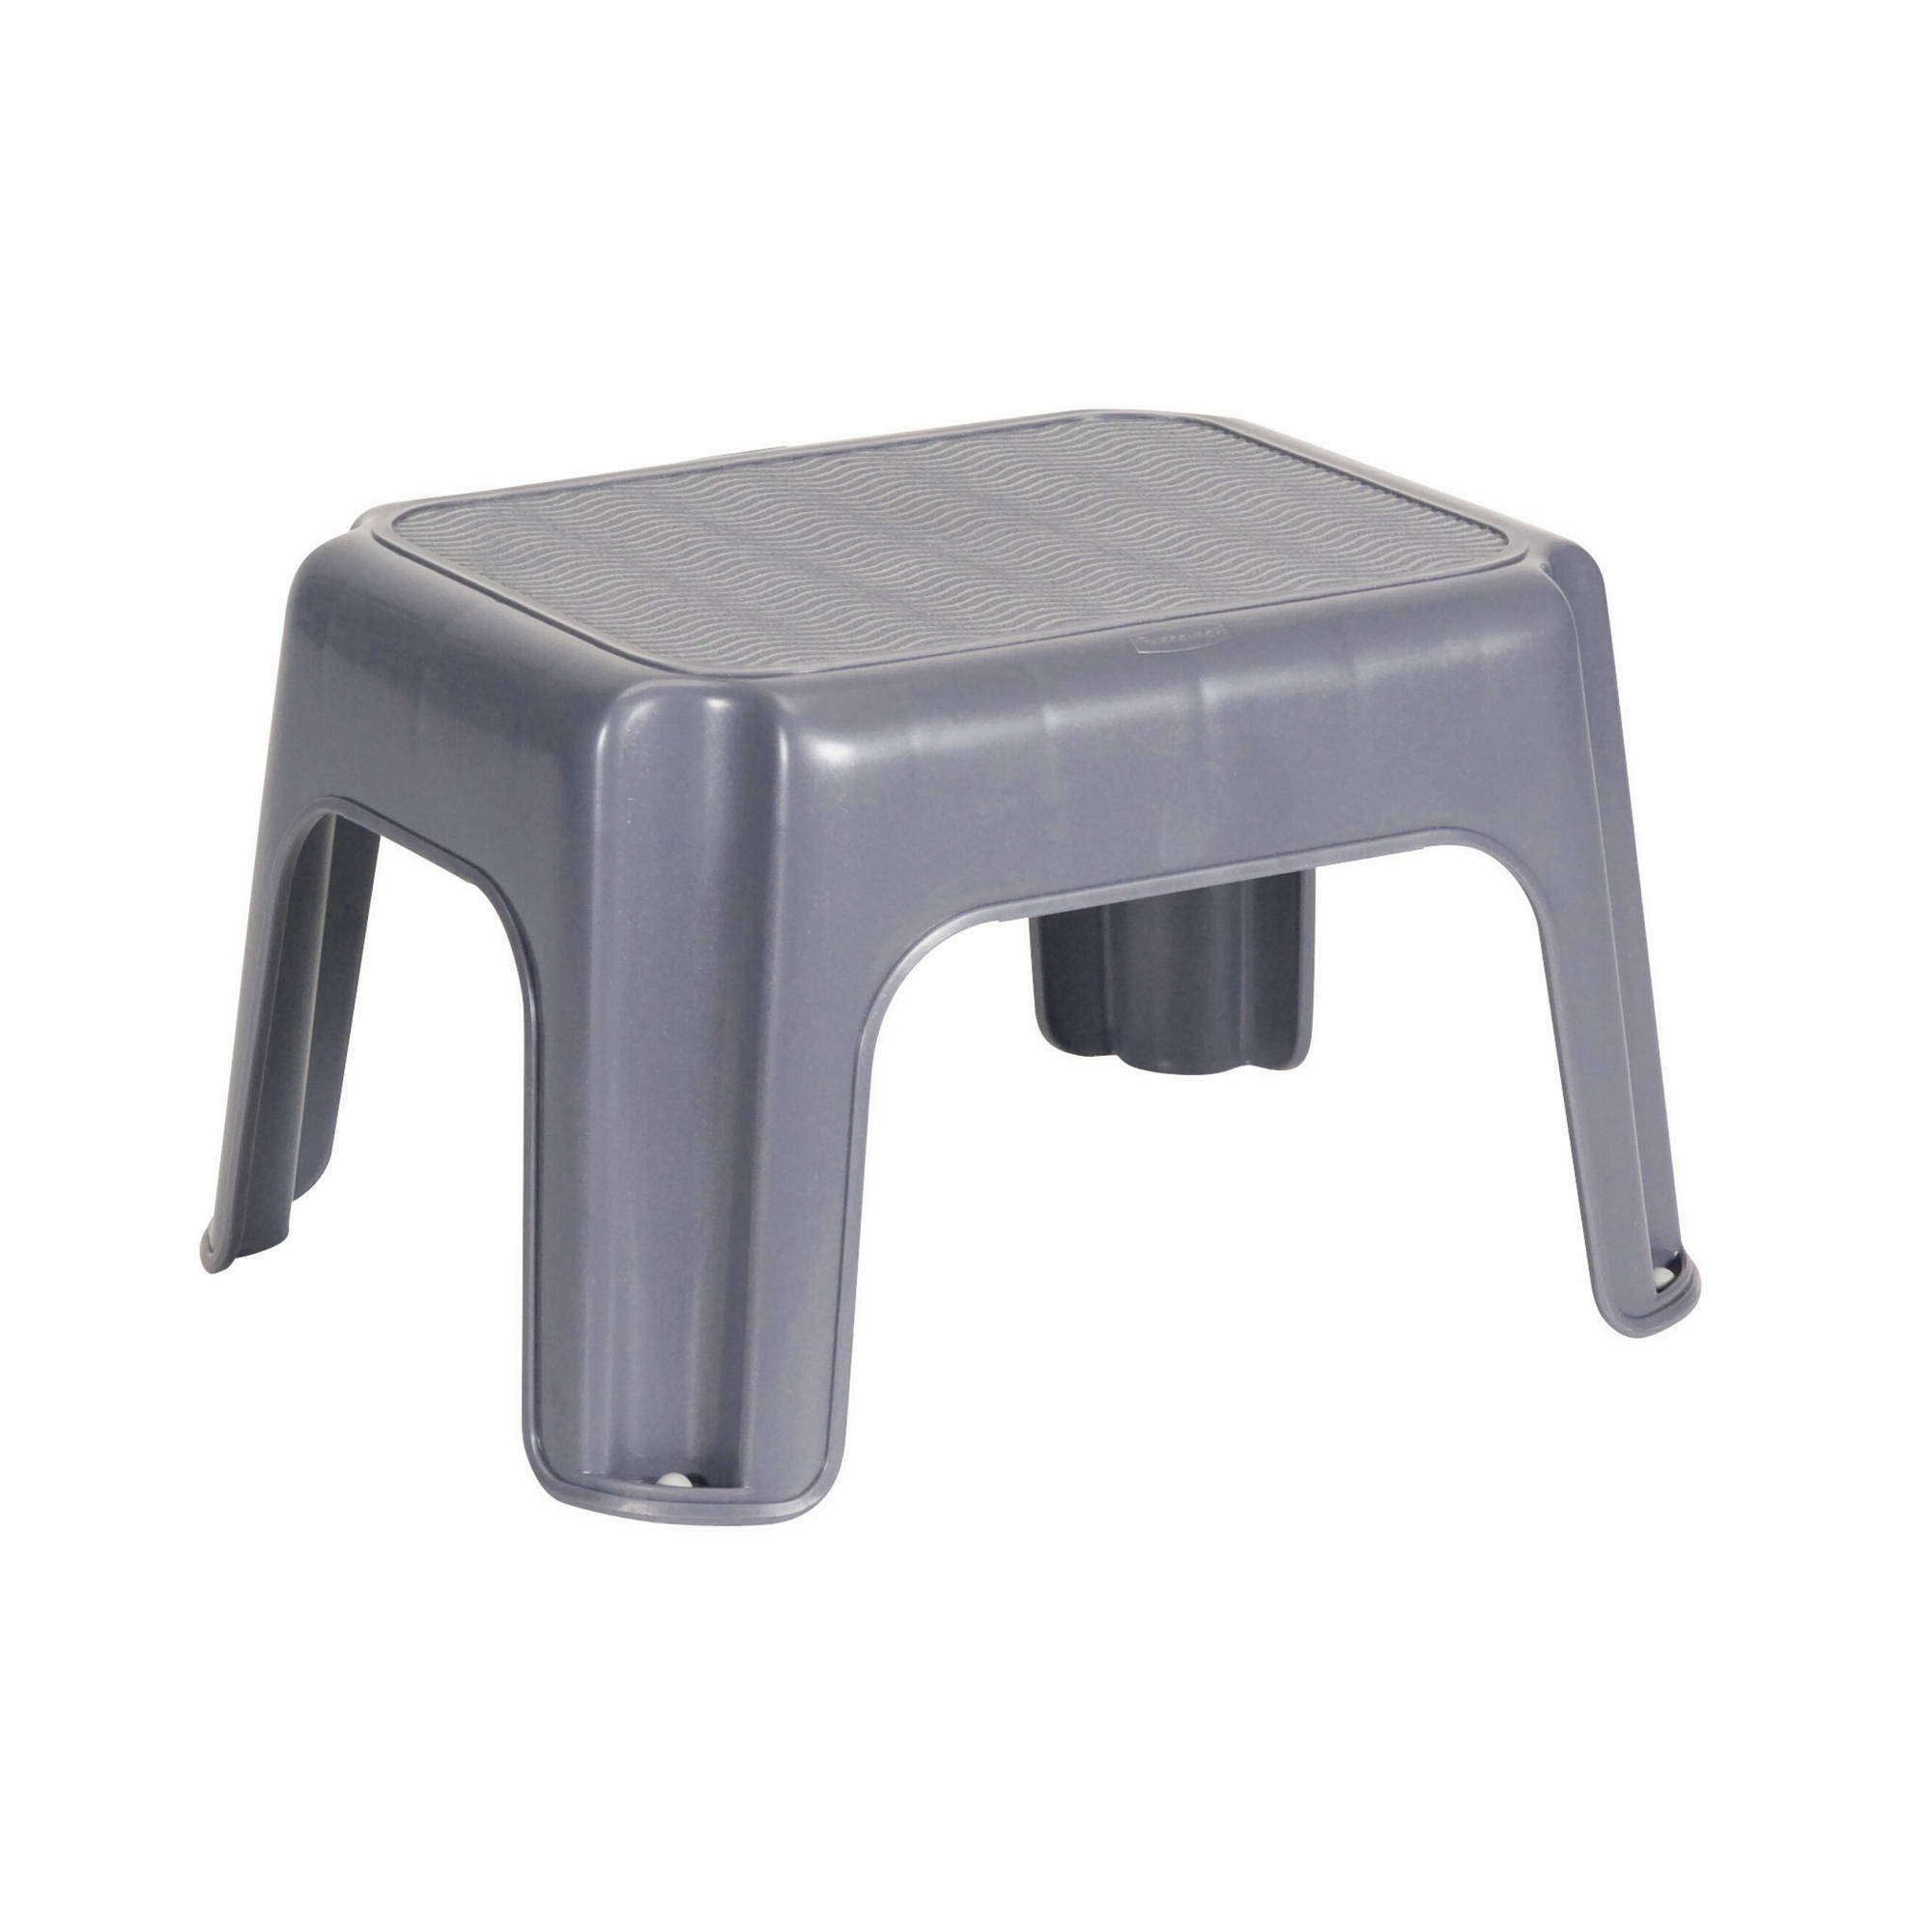 Rubbermaid Small Step Stool Black  sc 1 st  Walmart : black plastic step stool - islam-shia.org